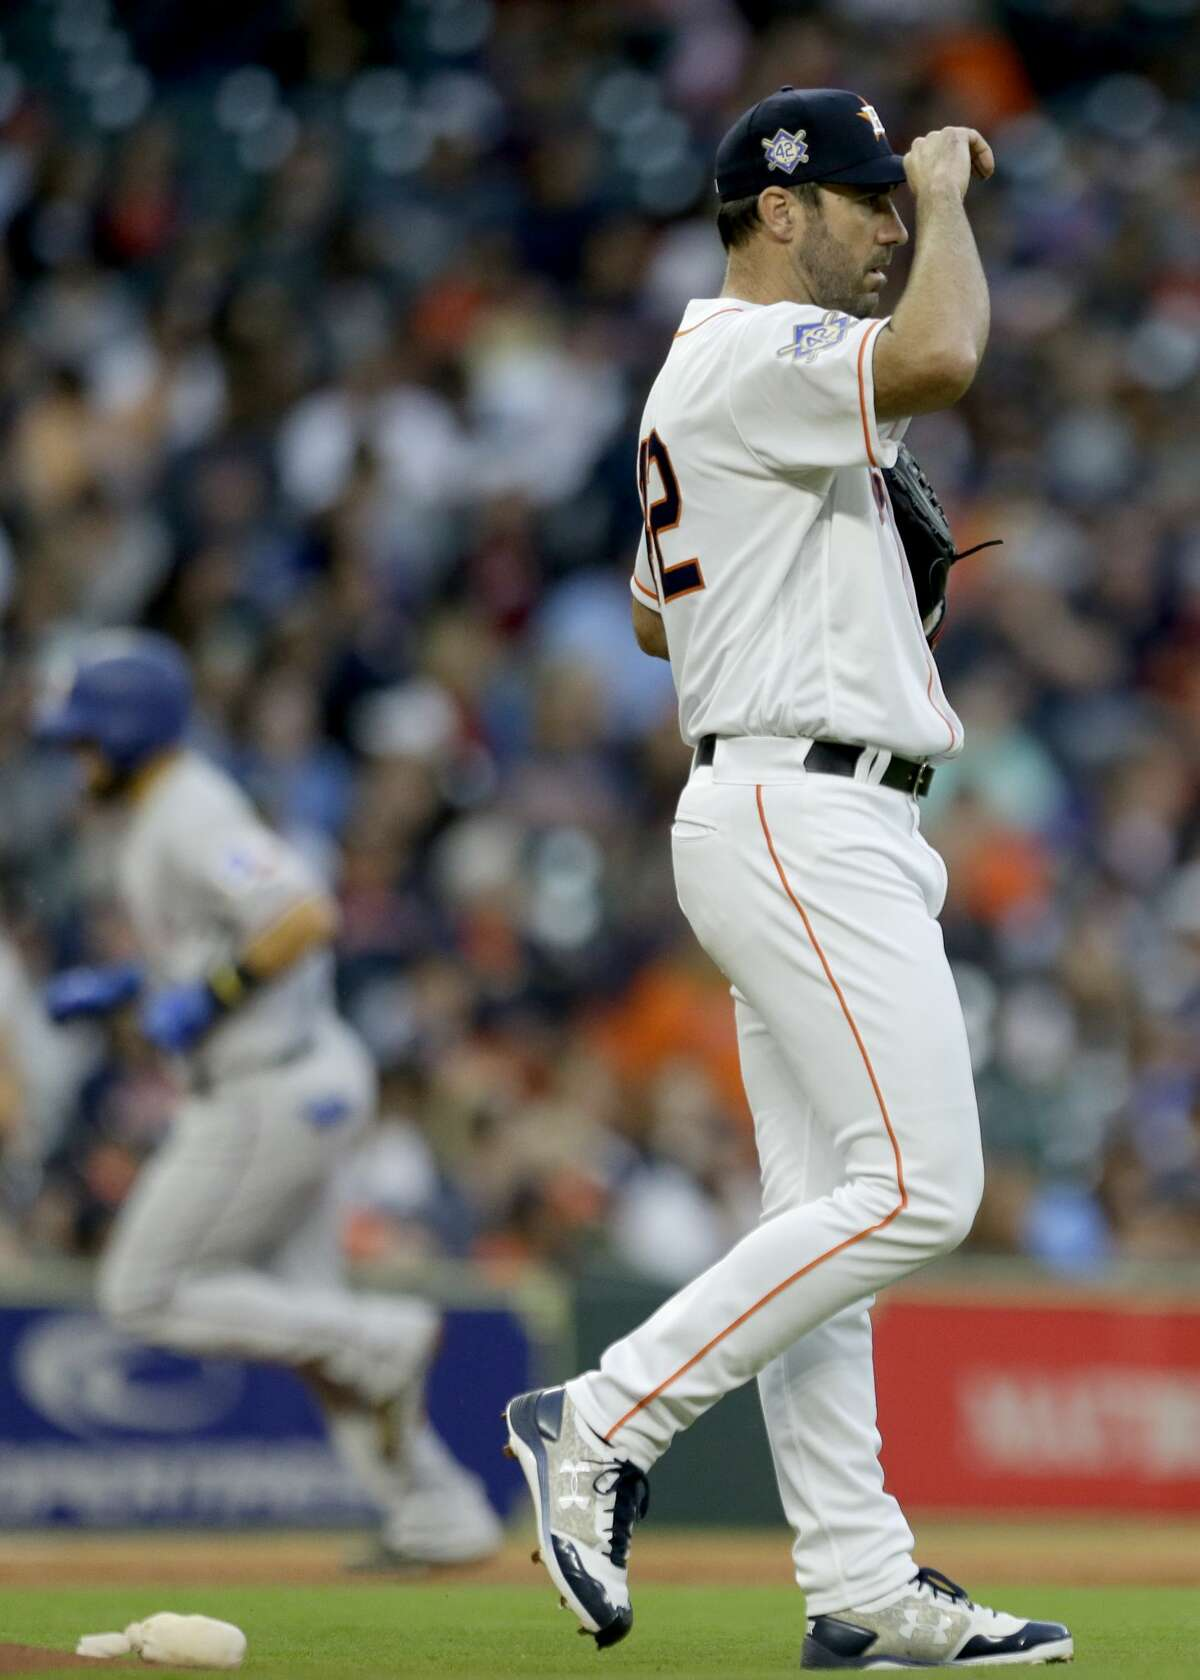 Houston Astros pitcher Justin Verlander reacts as Texas Rangers Robinson Chirinos rounds the bases on his home run during the third inning of game at Minute Maid Park Sunday, April 15, 2018, in Houston. ( Melissa Phillip / Houston Chronicle )